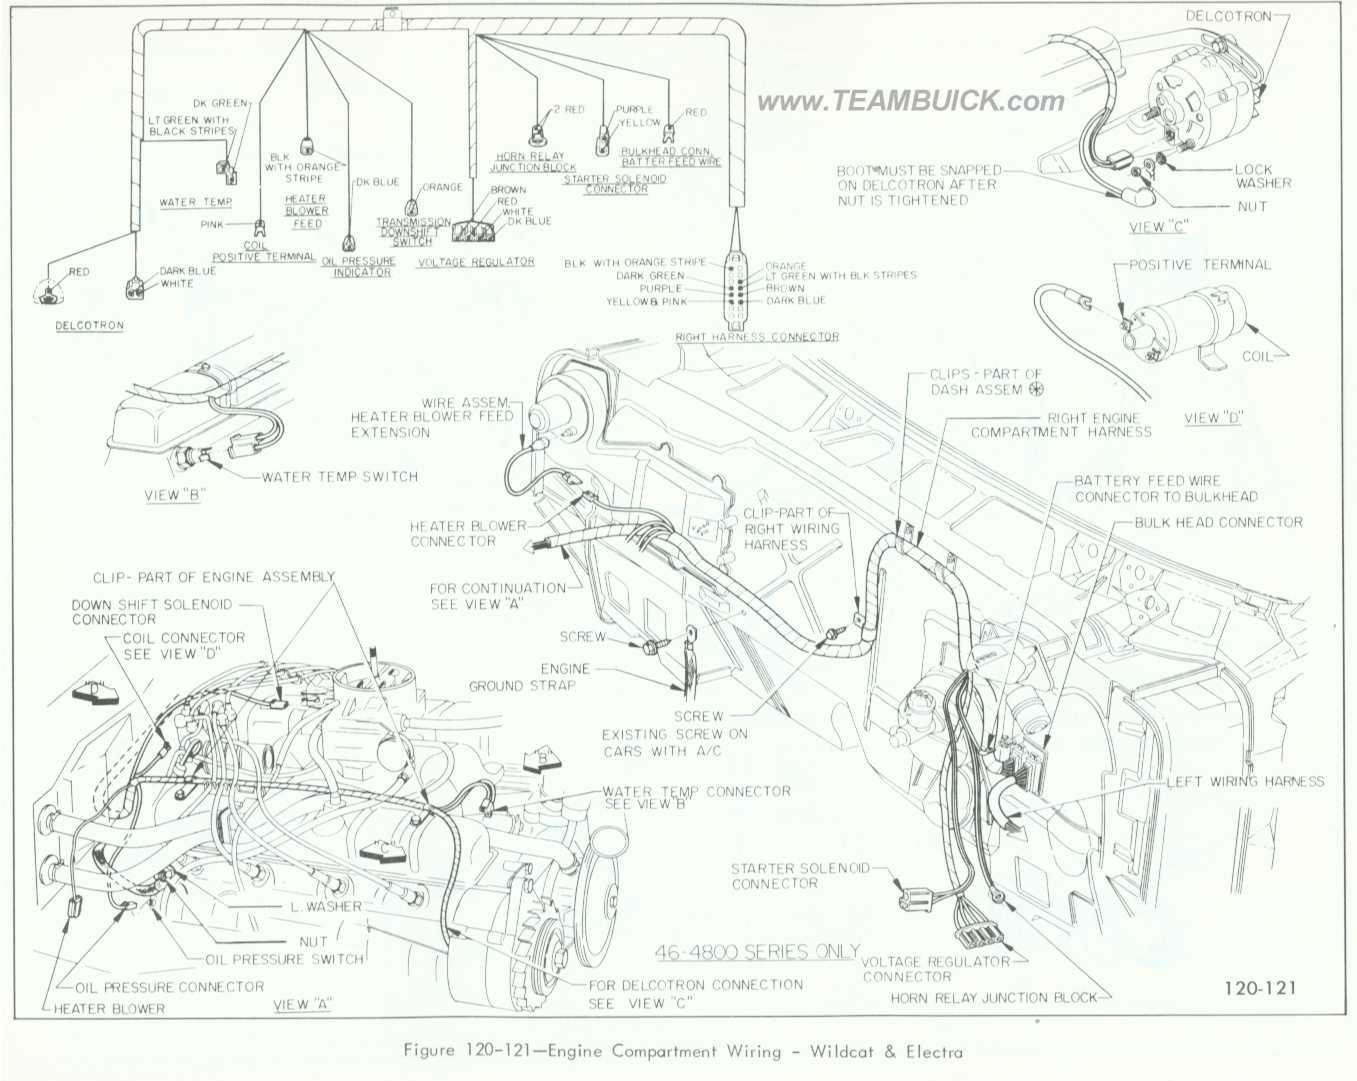 1966 Buick Wildcat, Electra, Engine Compartment Wiring